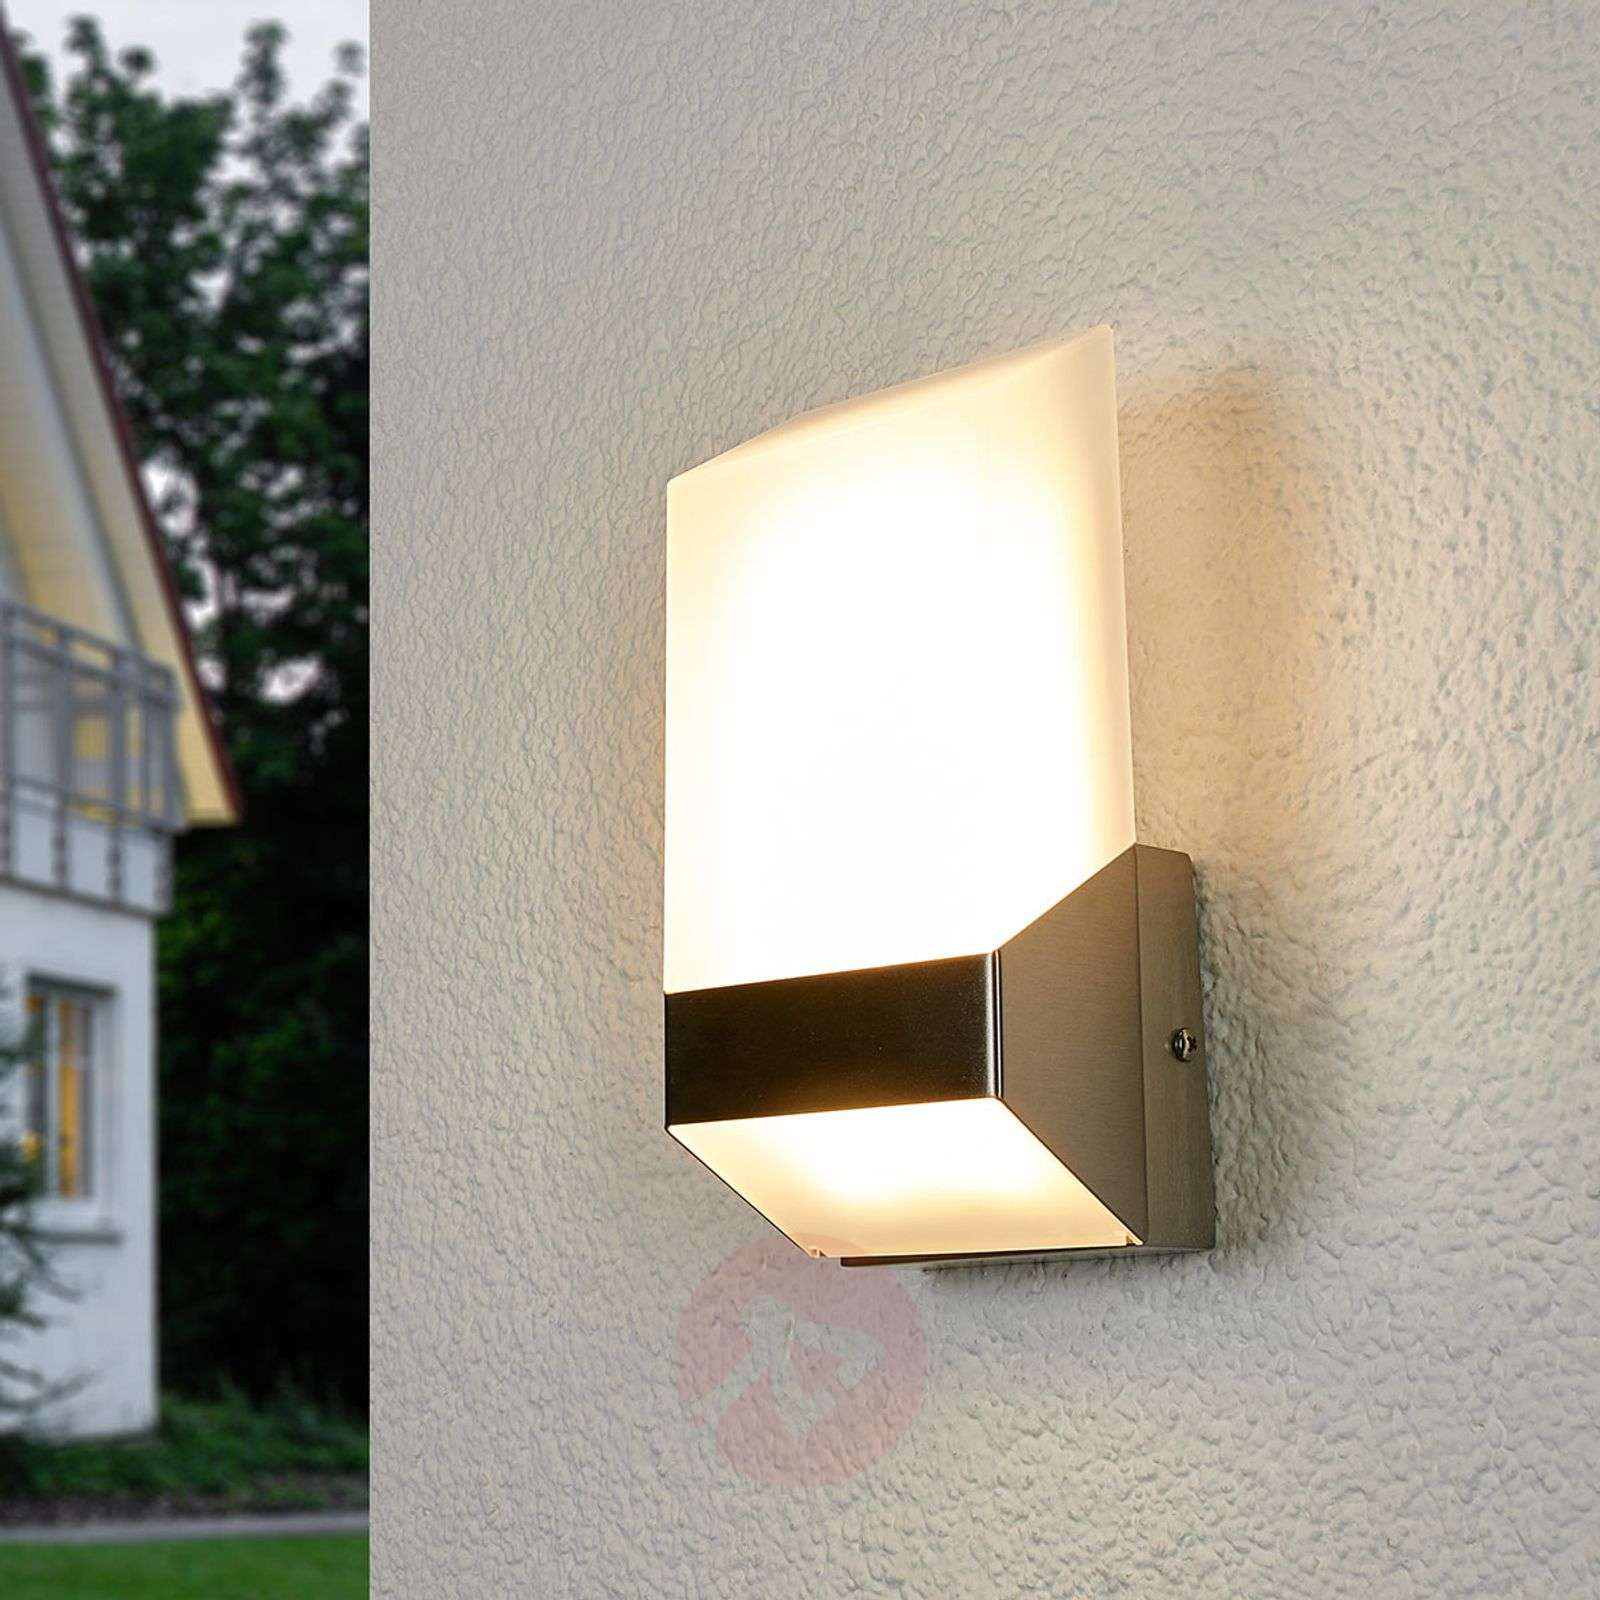 Modern flat led outdoor wall light stainless steel